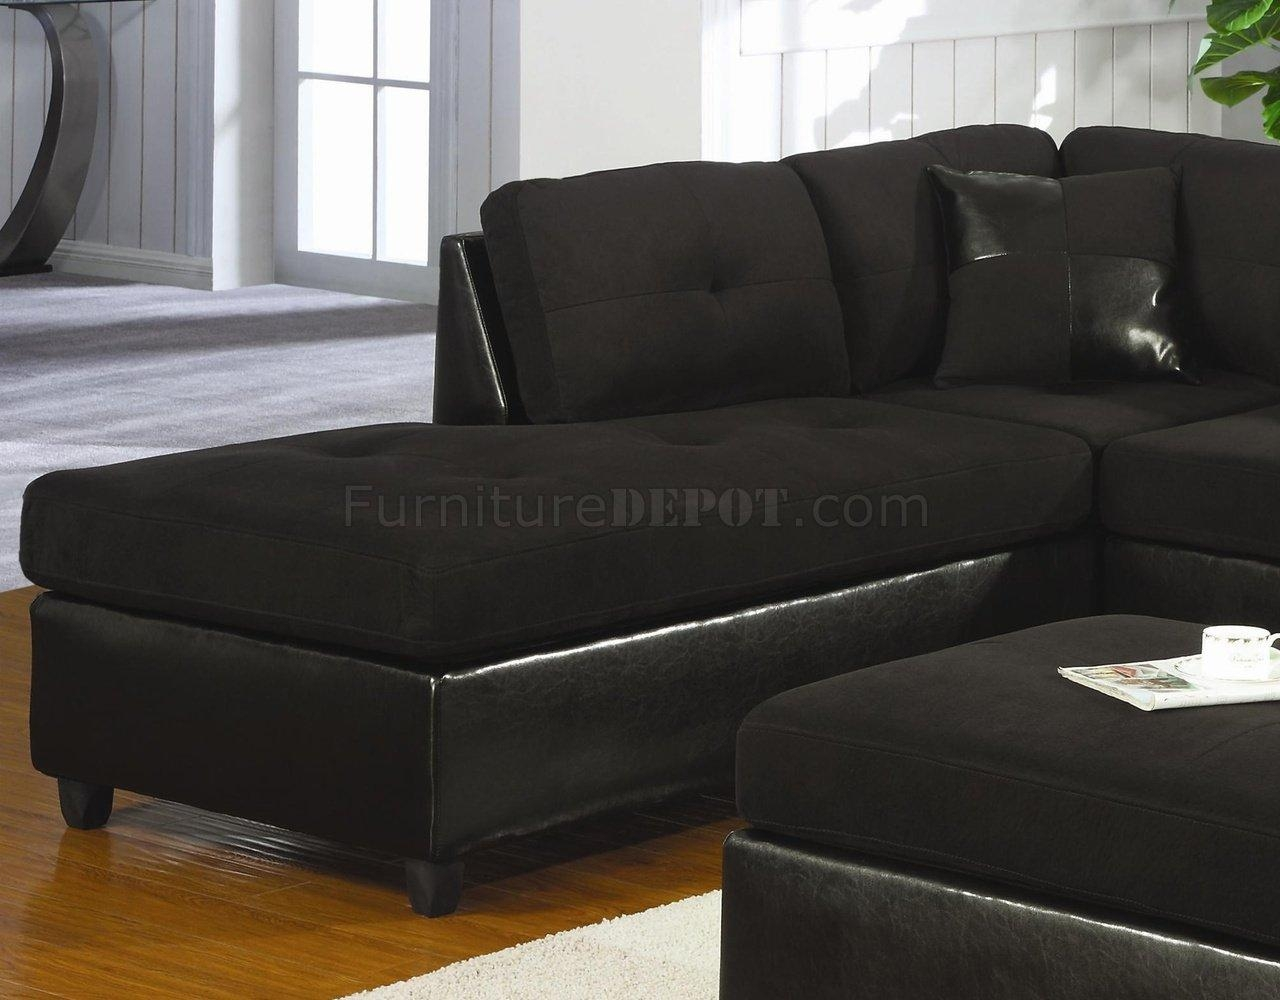 Sofa: Oversize Sofas | Oversized Couch | Extra Large Sectional With Big Comfy Sofas (View 23 of 25)